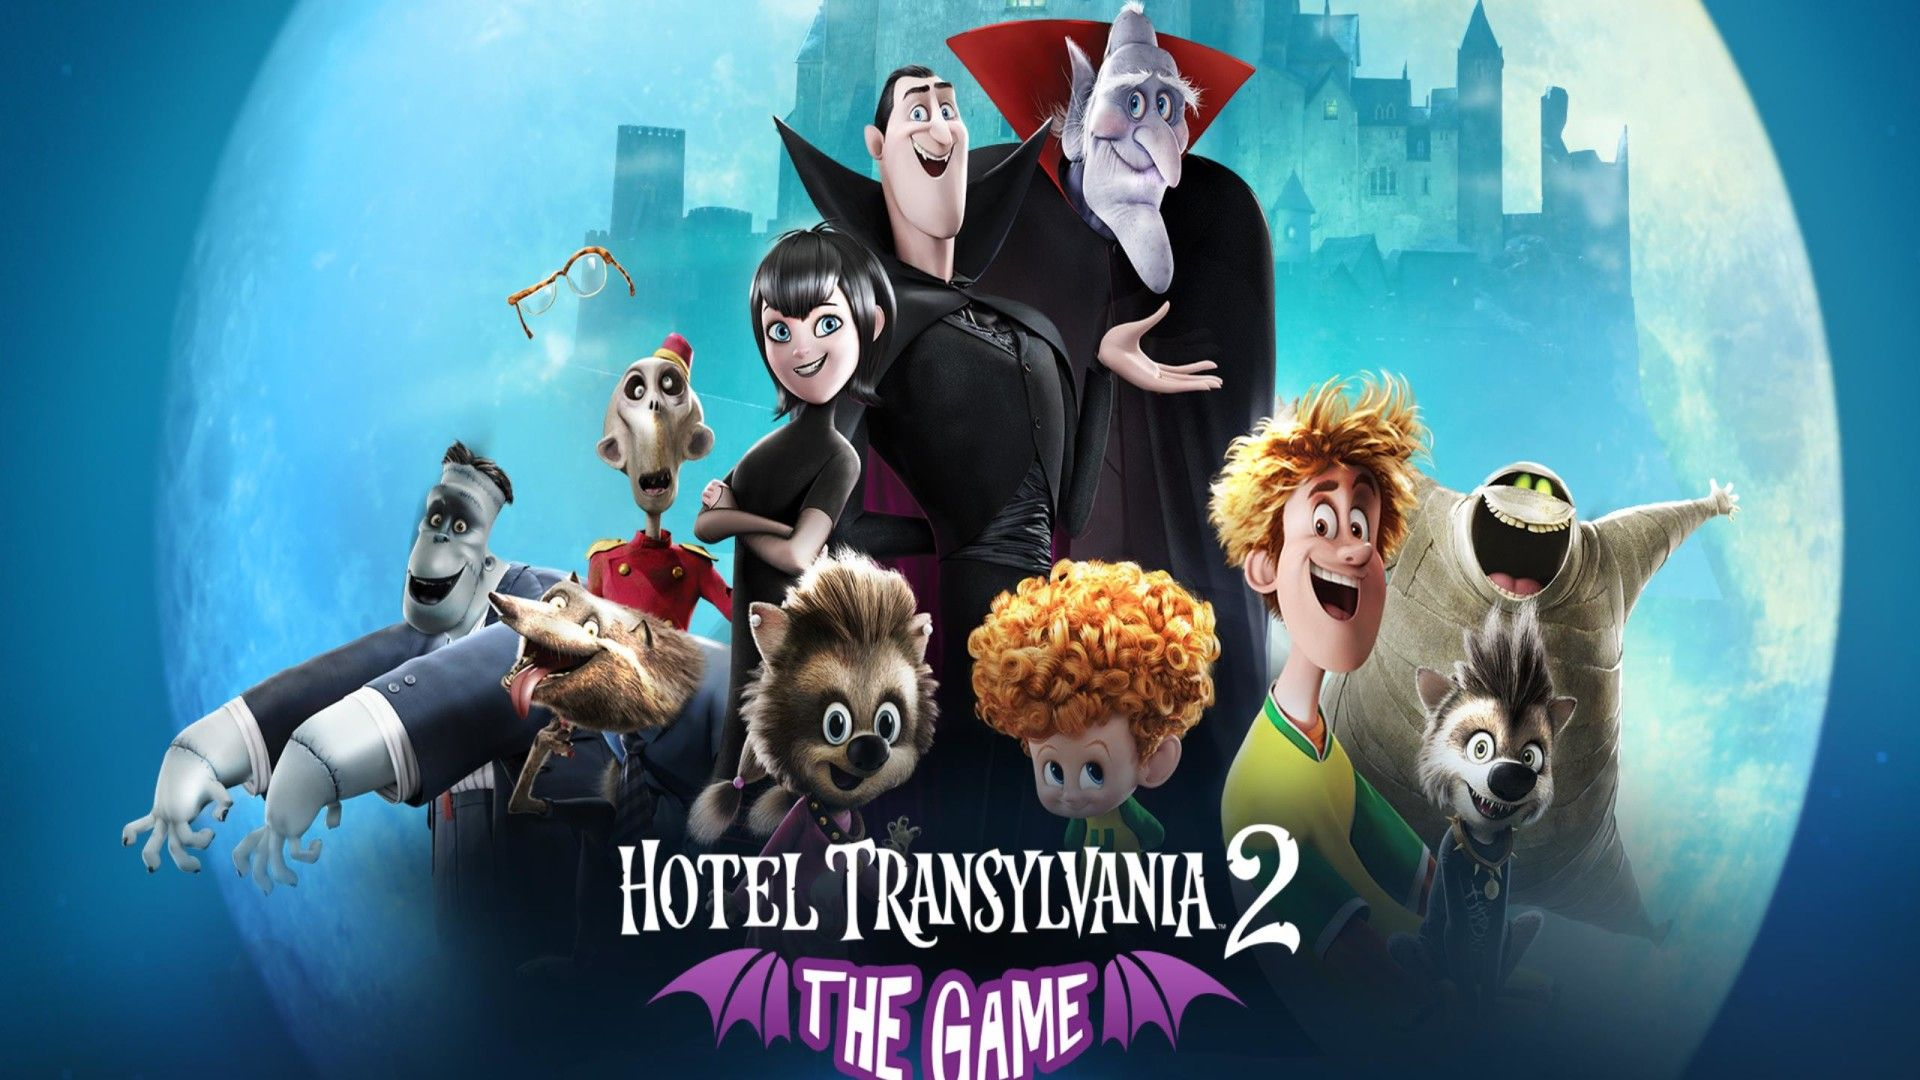 Hotel Transylvania 2 Hd Wallpapers Backgrounds